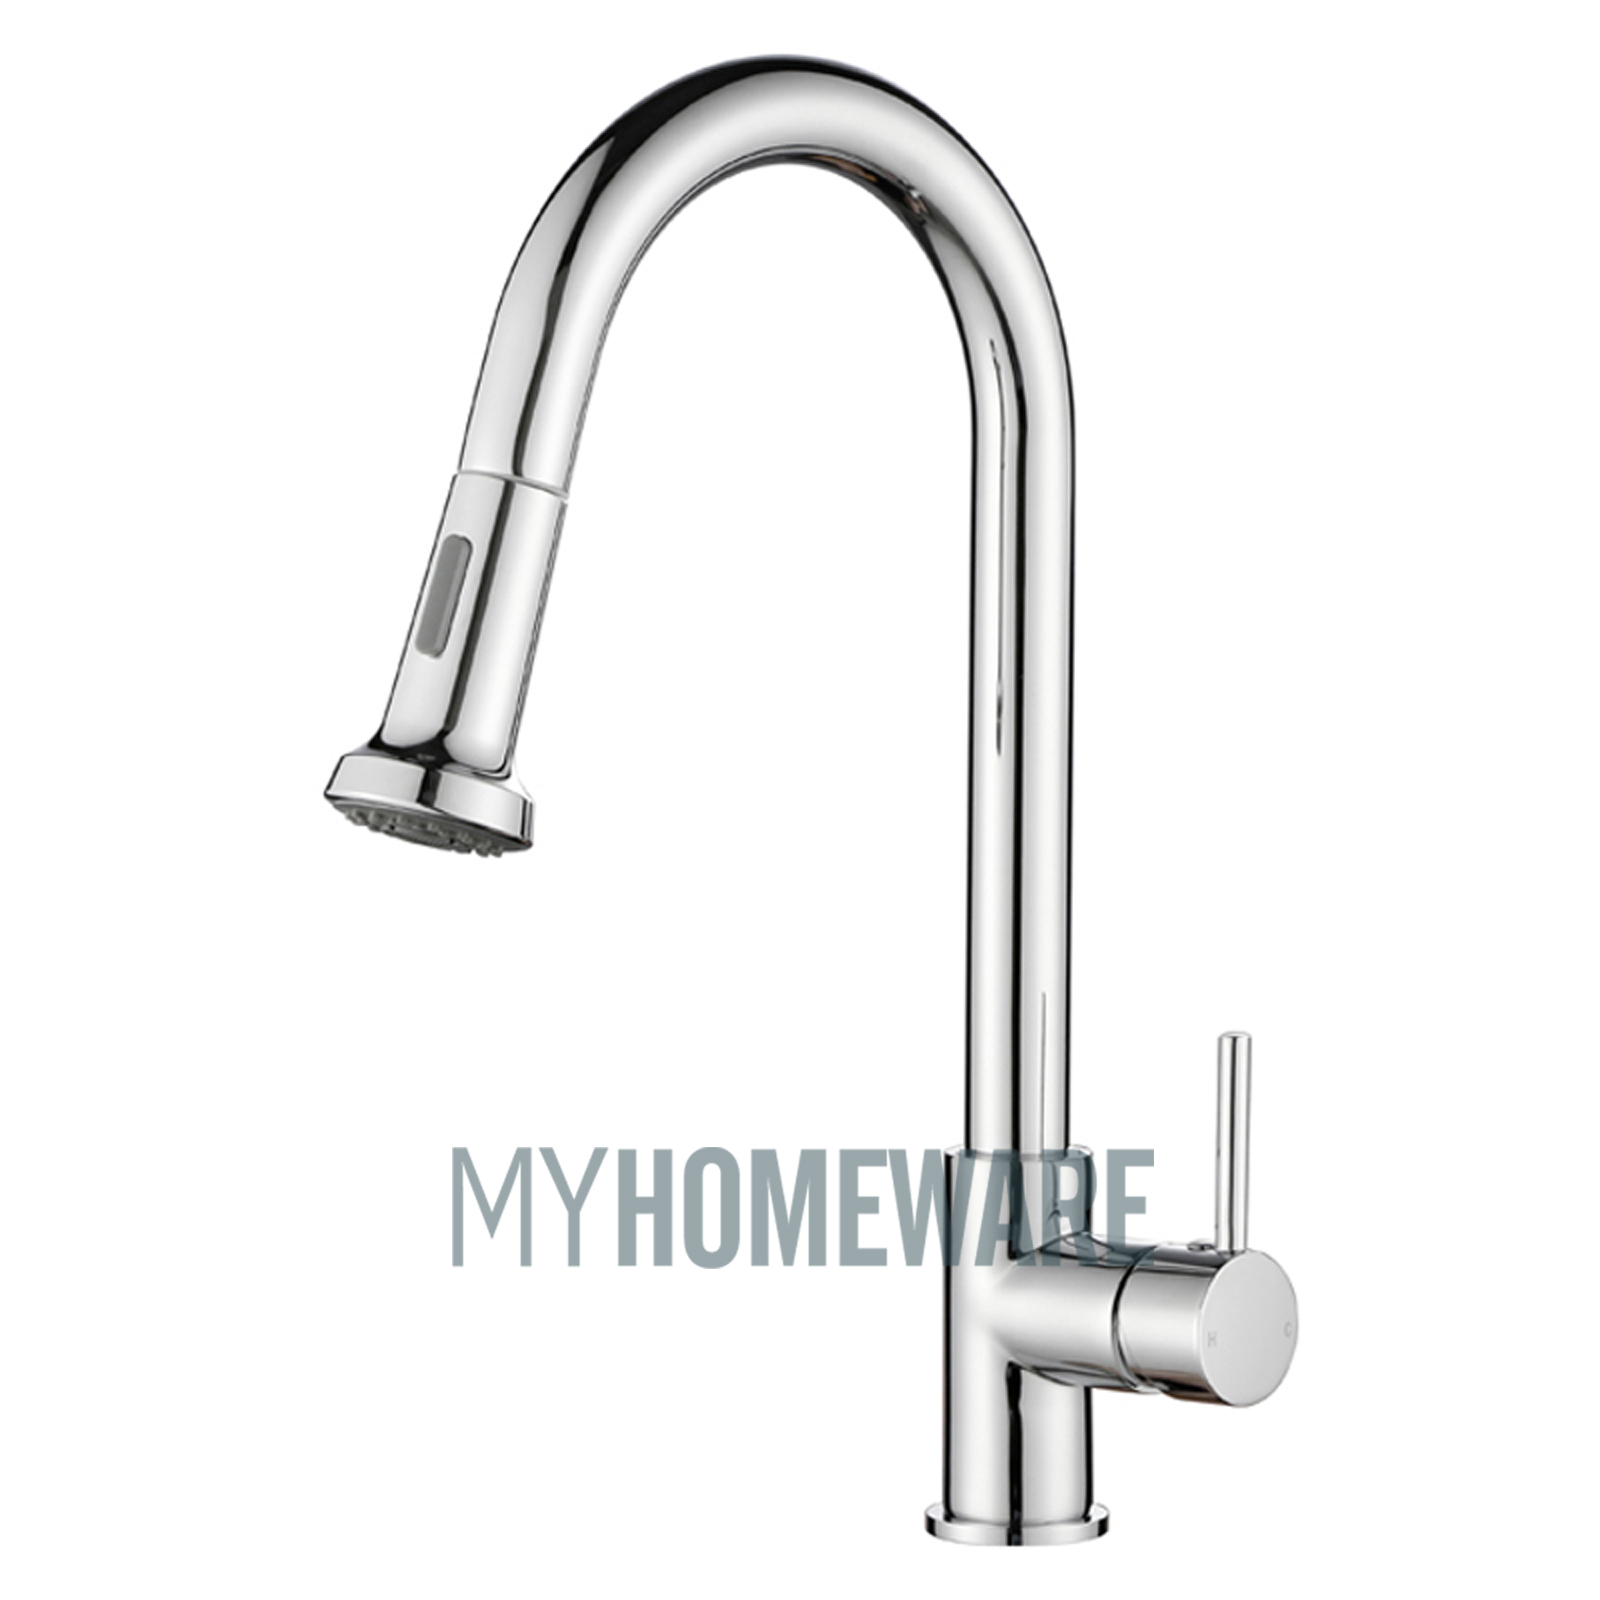 gooseneck kitchen faucet with pull out spray outdoor island aca brass mixer tap